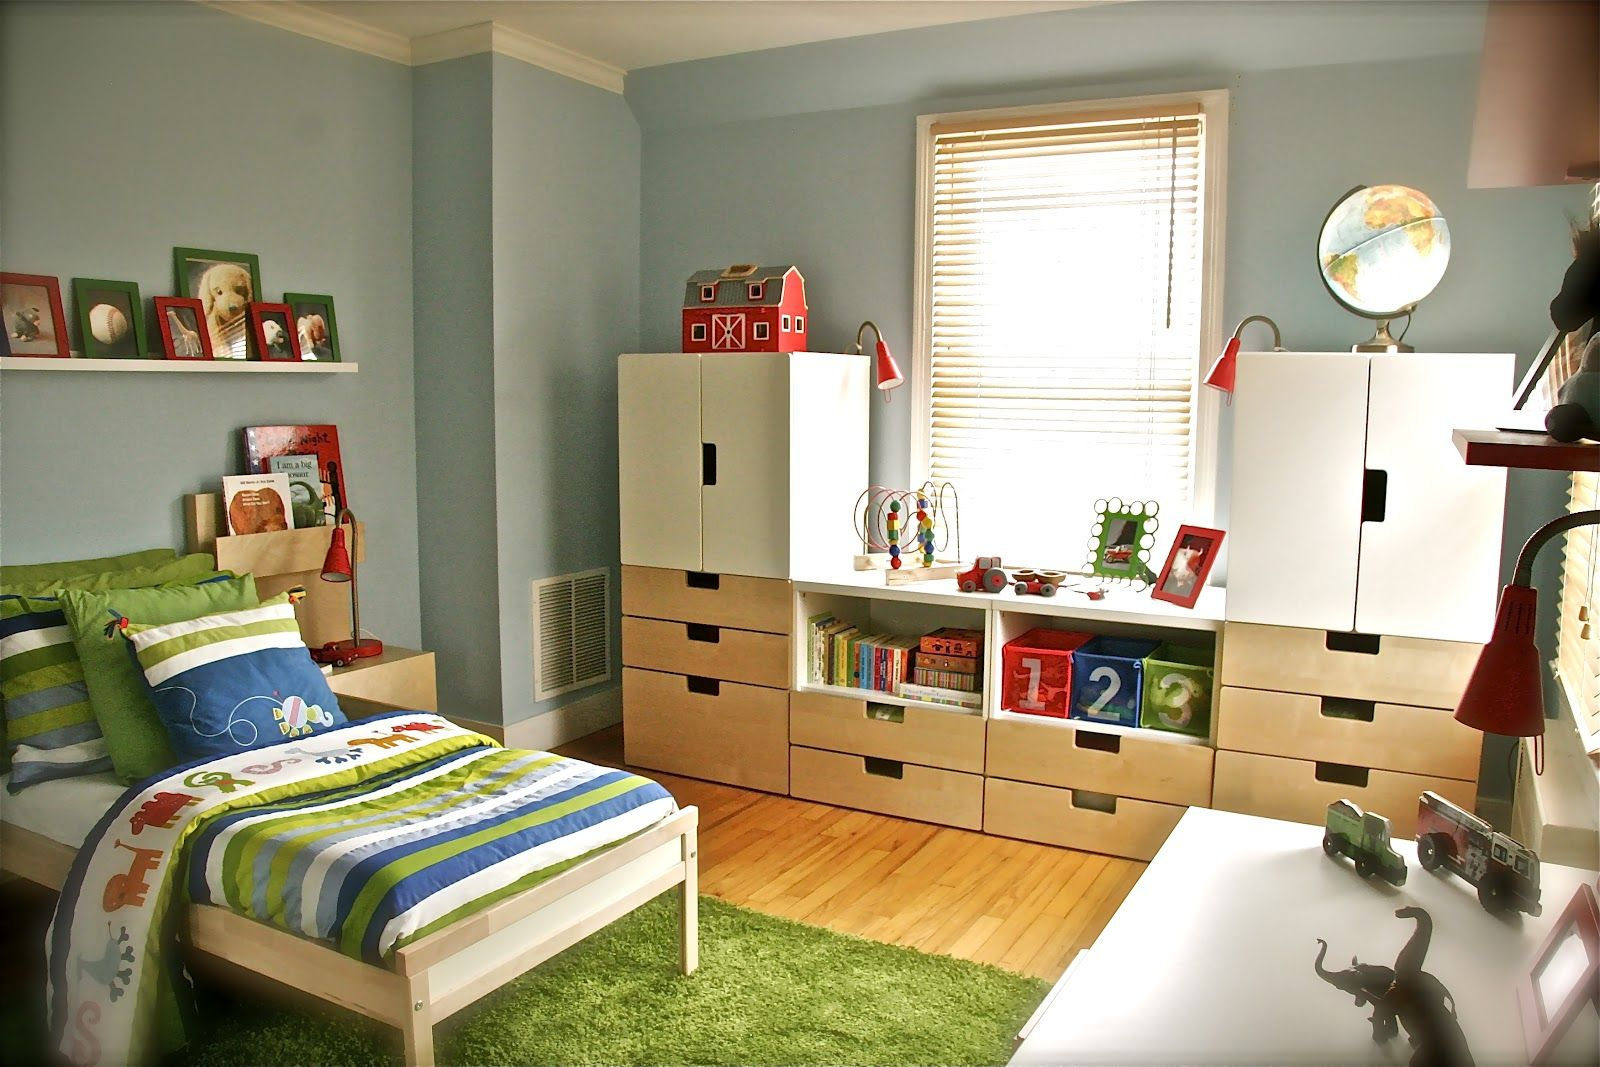 stuva room children pinterest kinderzimmer kinderzimmer ideen und kinder zimmer. Black Bedroom Furniture Sets. Home Design Ideas